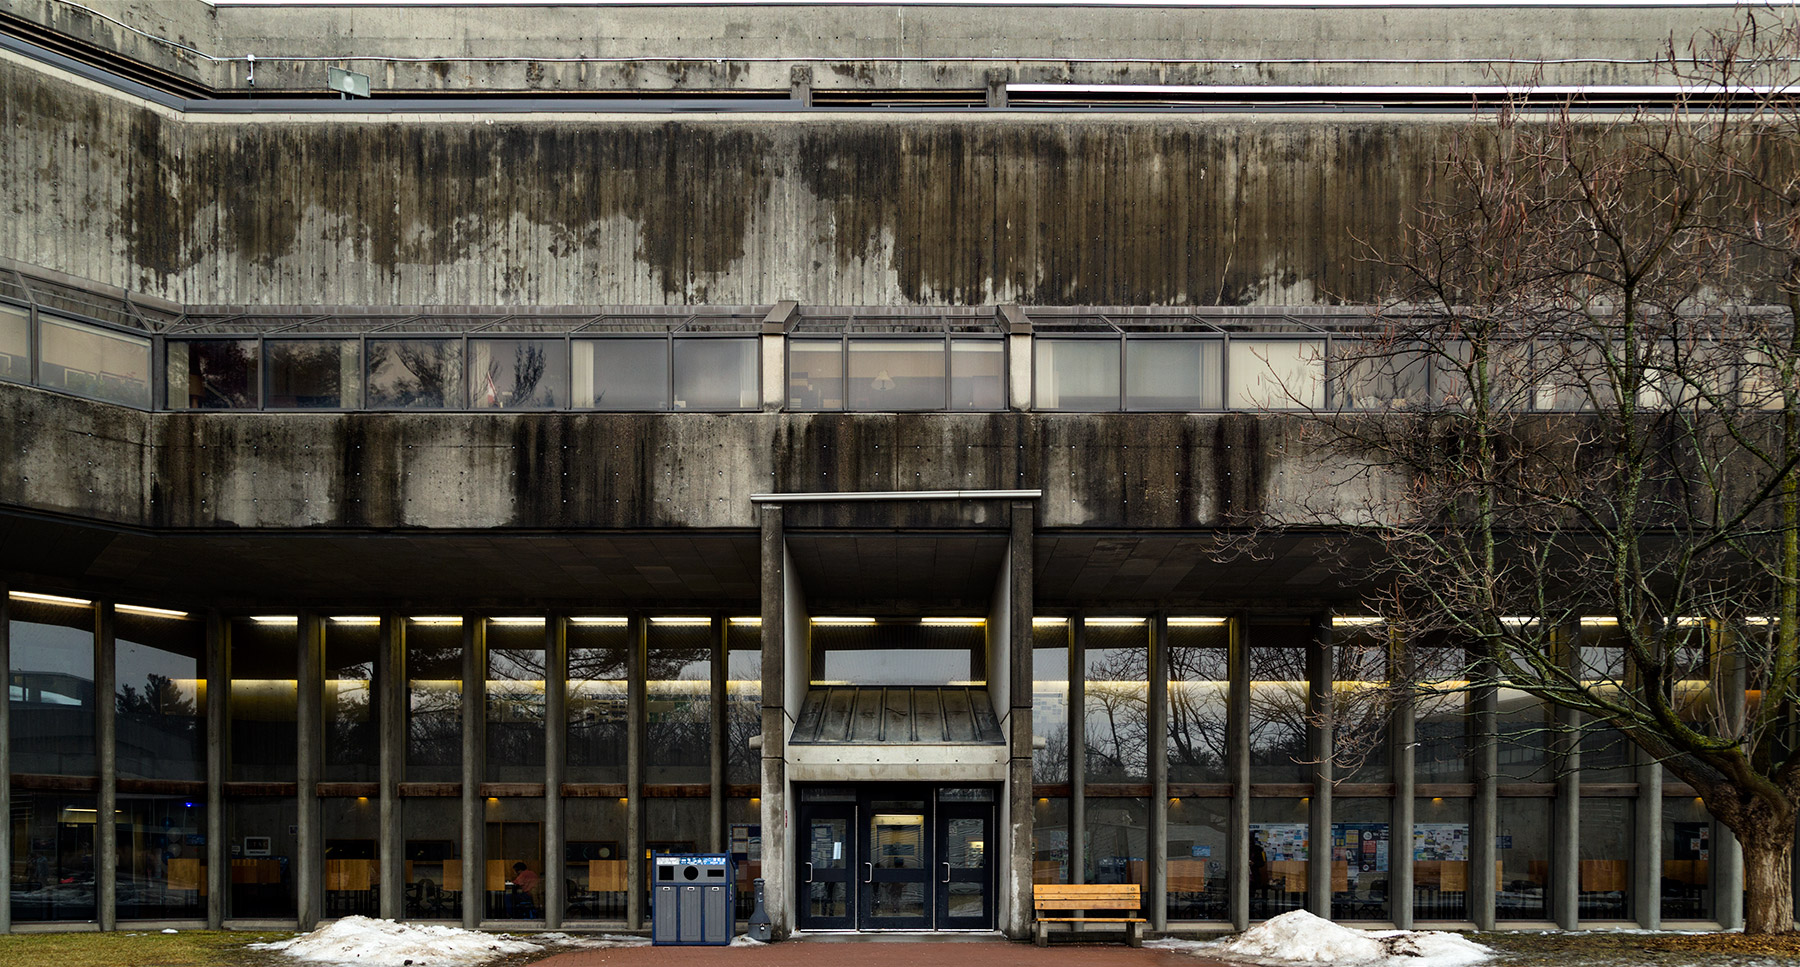 20150324. The striking modern facade of the brutalist Science Wi